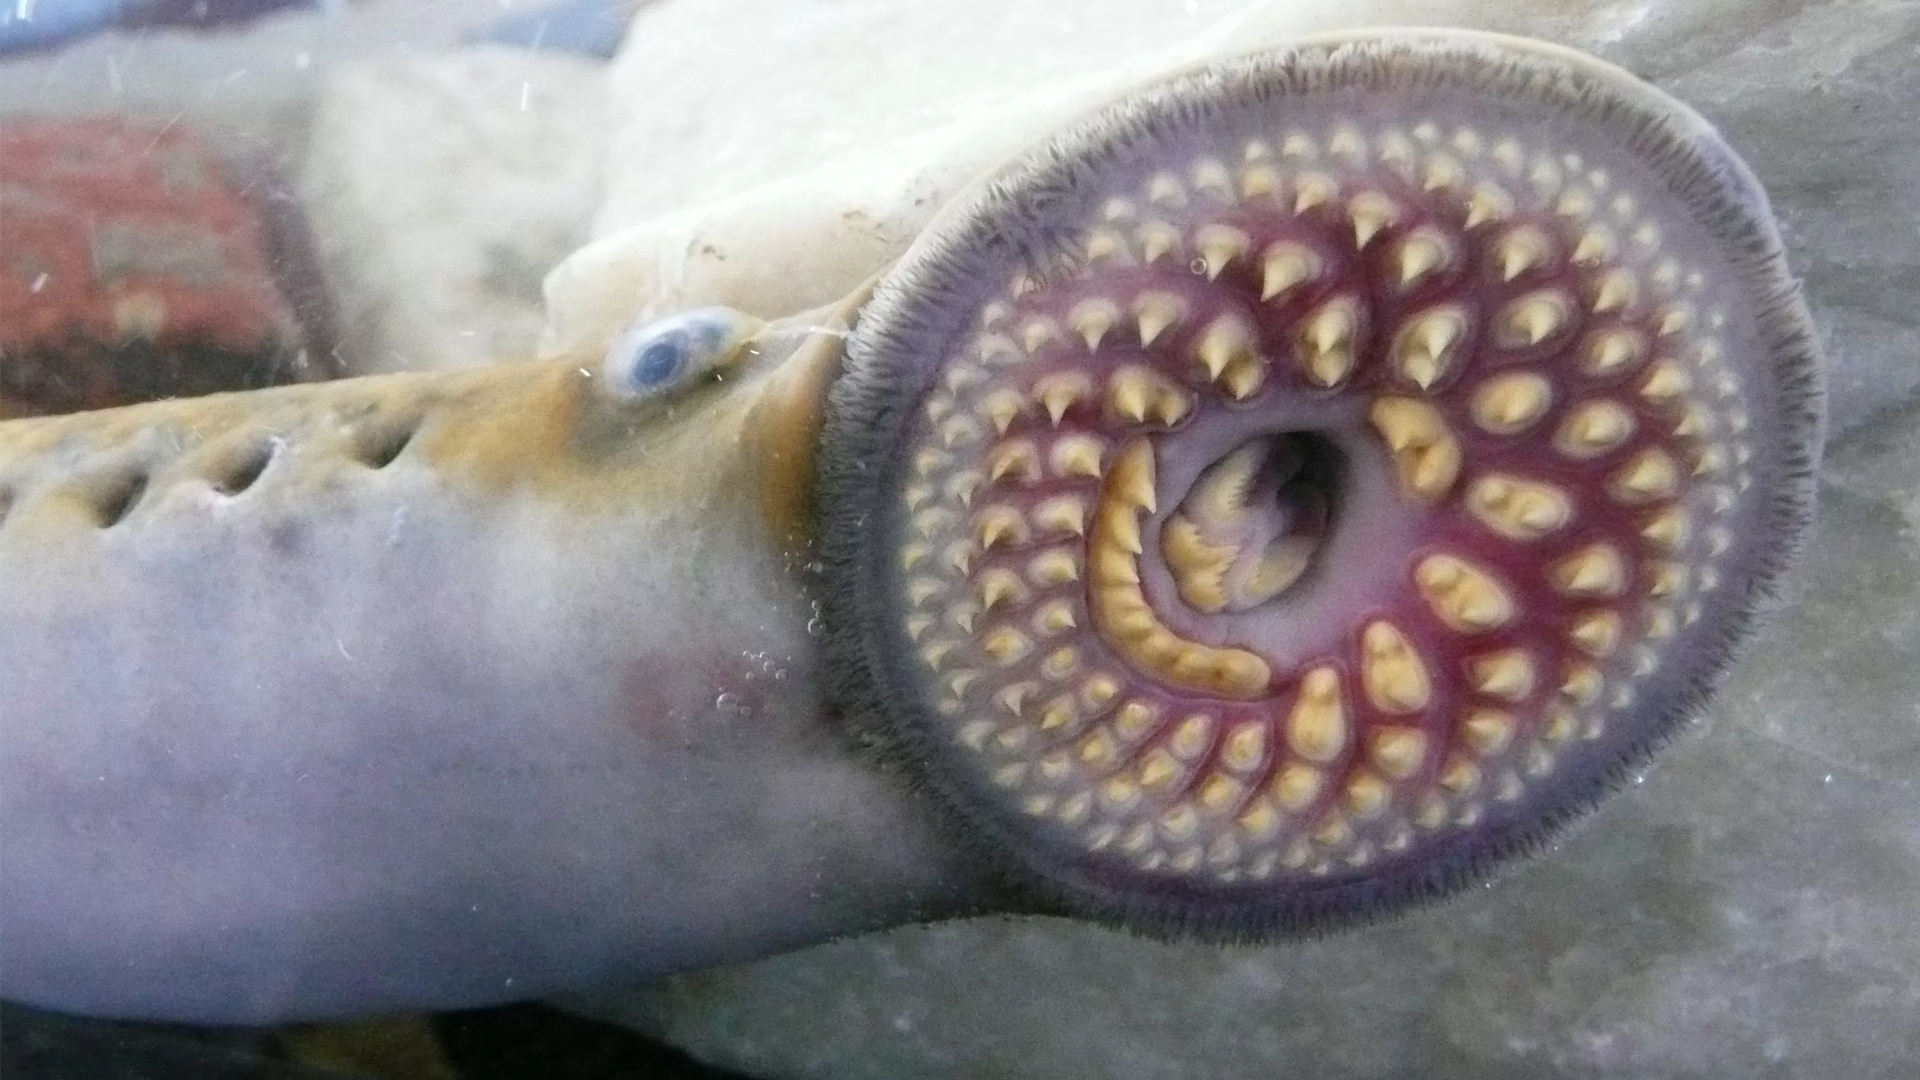 This Bloodsucking Fish Is The Vampire Of The Sea (But With